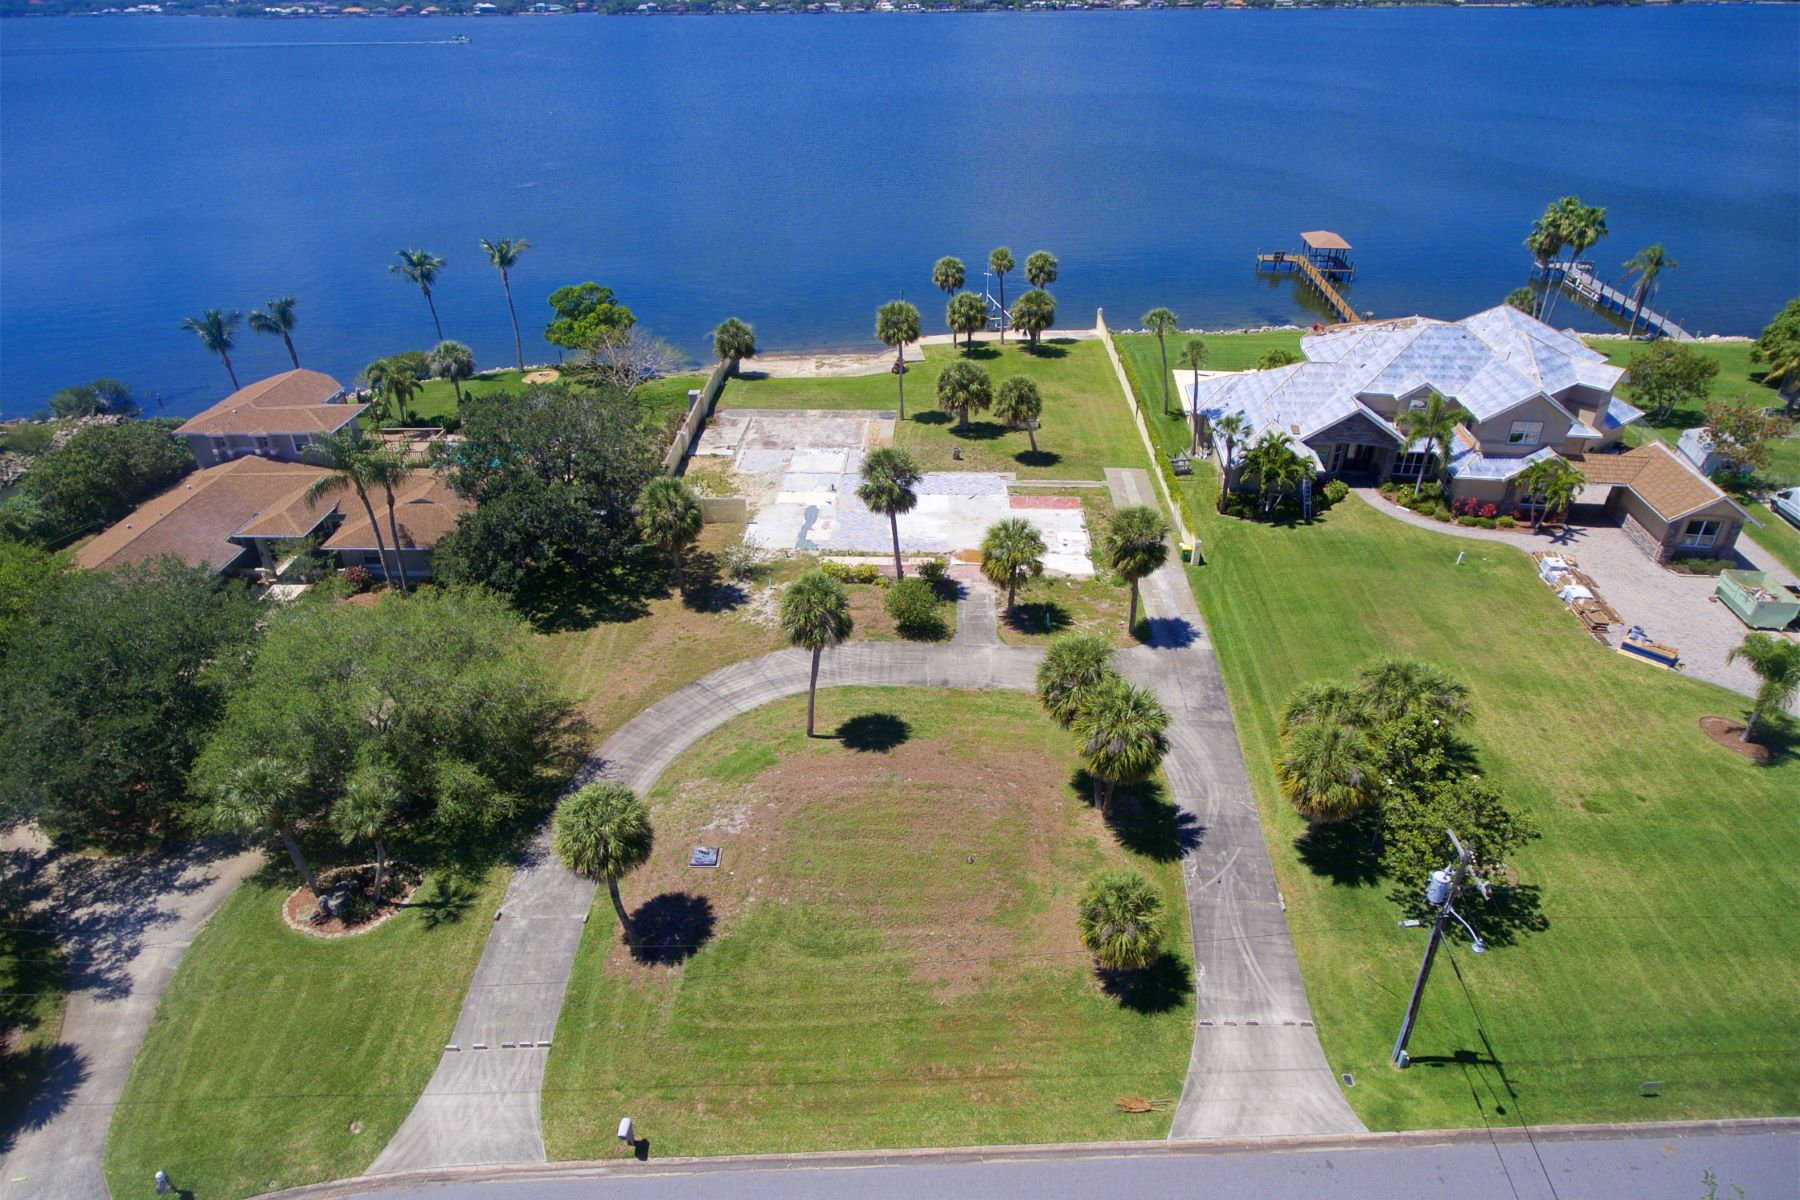 土地 為 出售 在 Premium Waterfront Homesite in Convenient and Manicured Tequesta Harbor 196 Tequesta Harbor Drive Merritt Island, 佛羅里達州 32952 美國